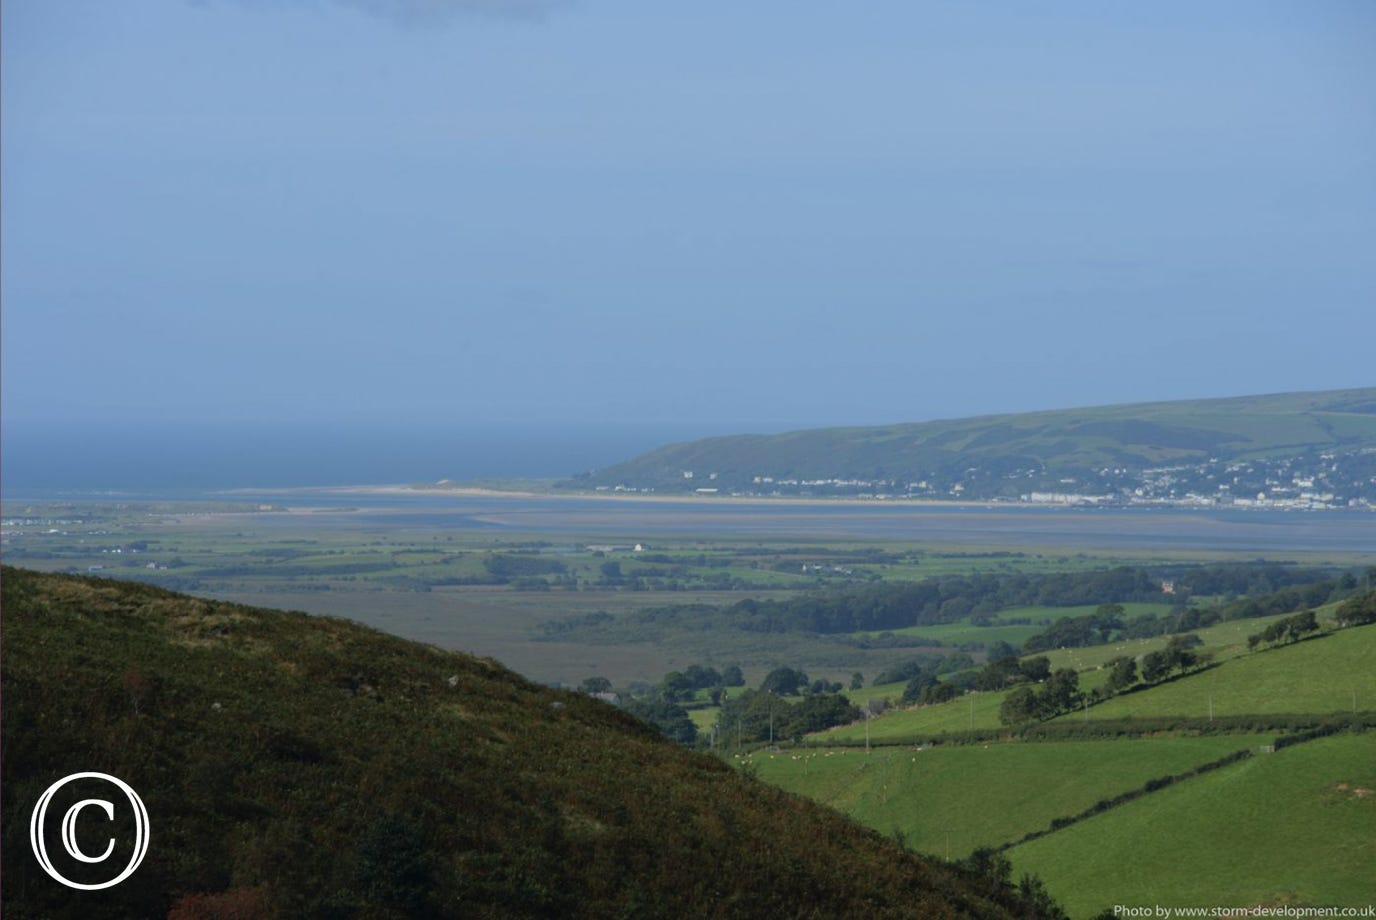 The same view towards Ynys Las and Aberdyfi on a different time of year. Photo by Storm Development